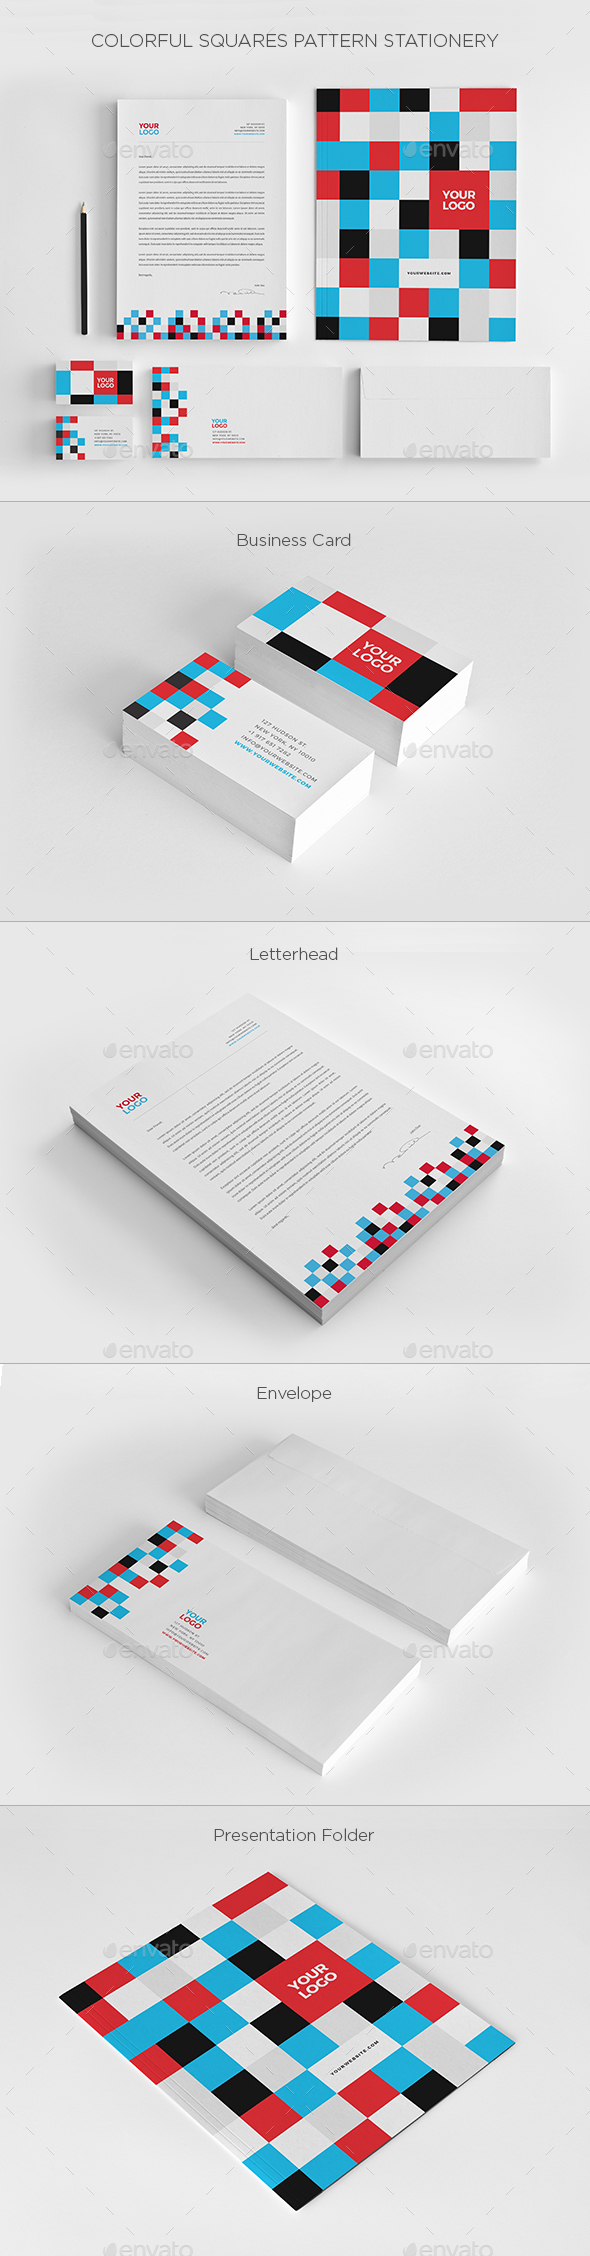 Colorful Squares Pattern Stationery - Stationery Print Templates